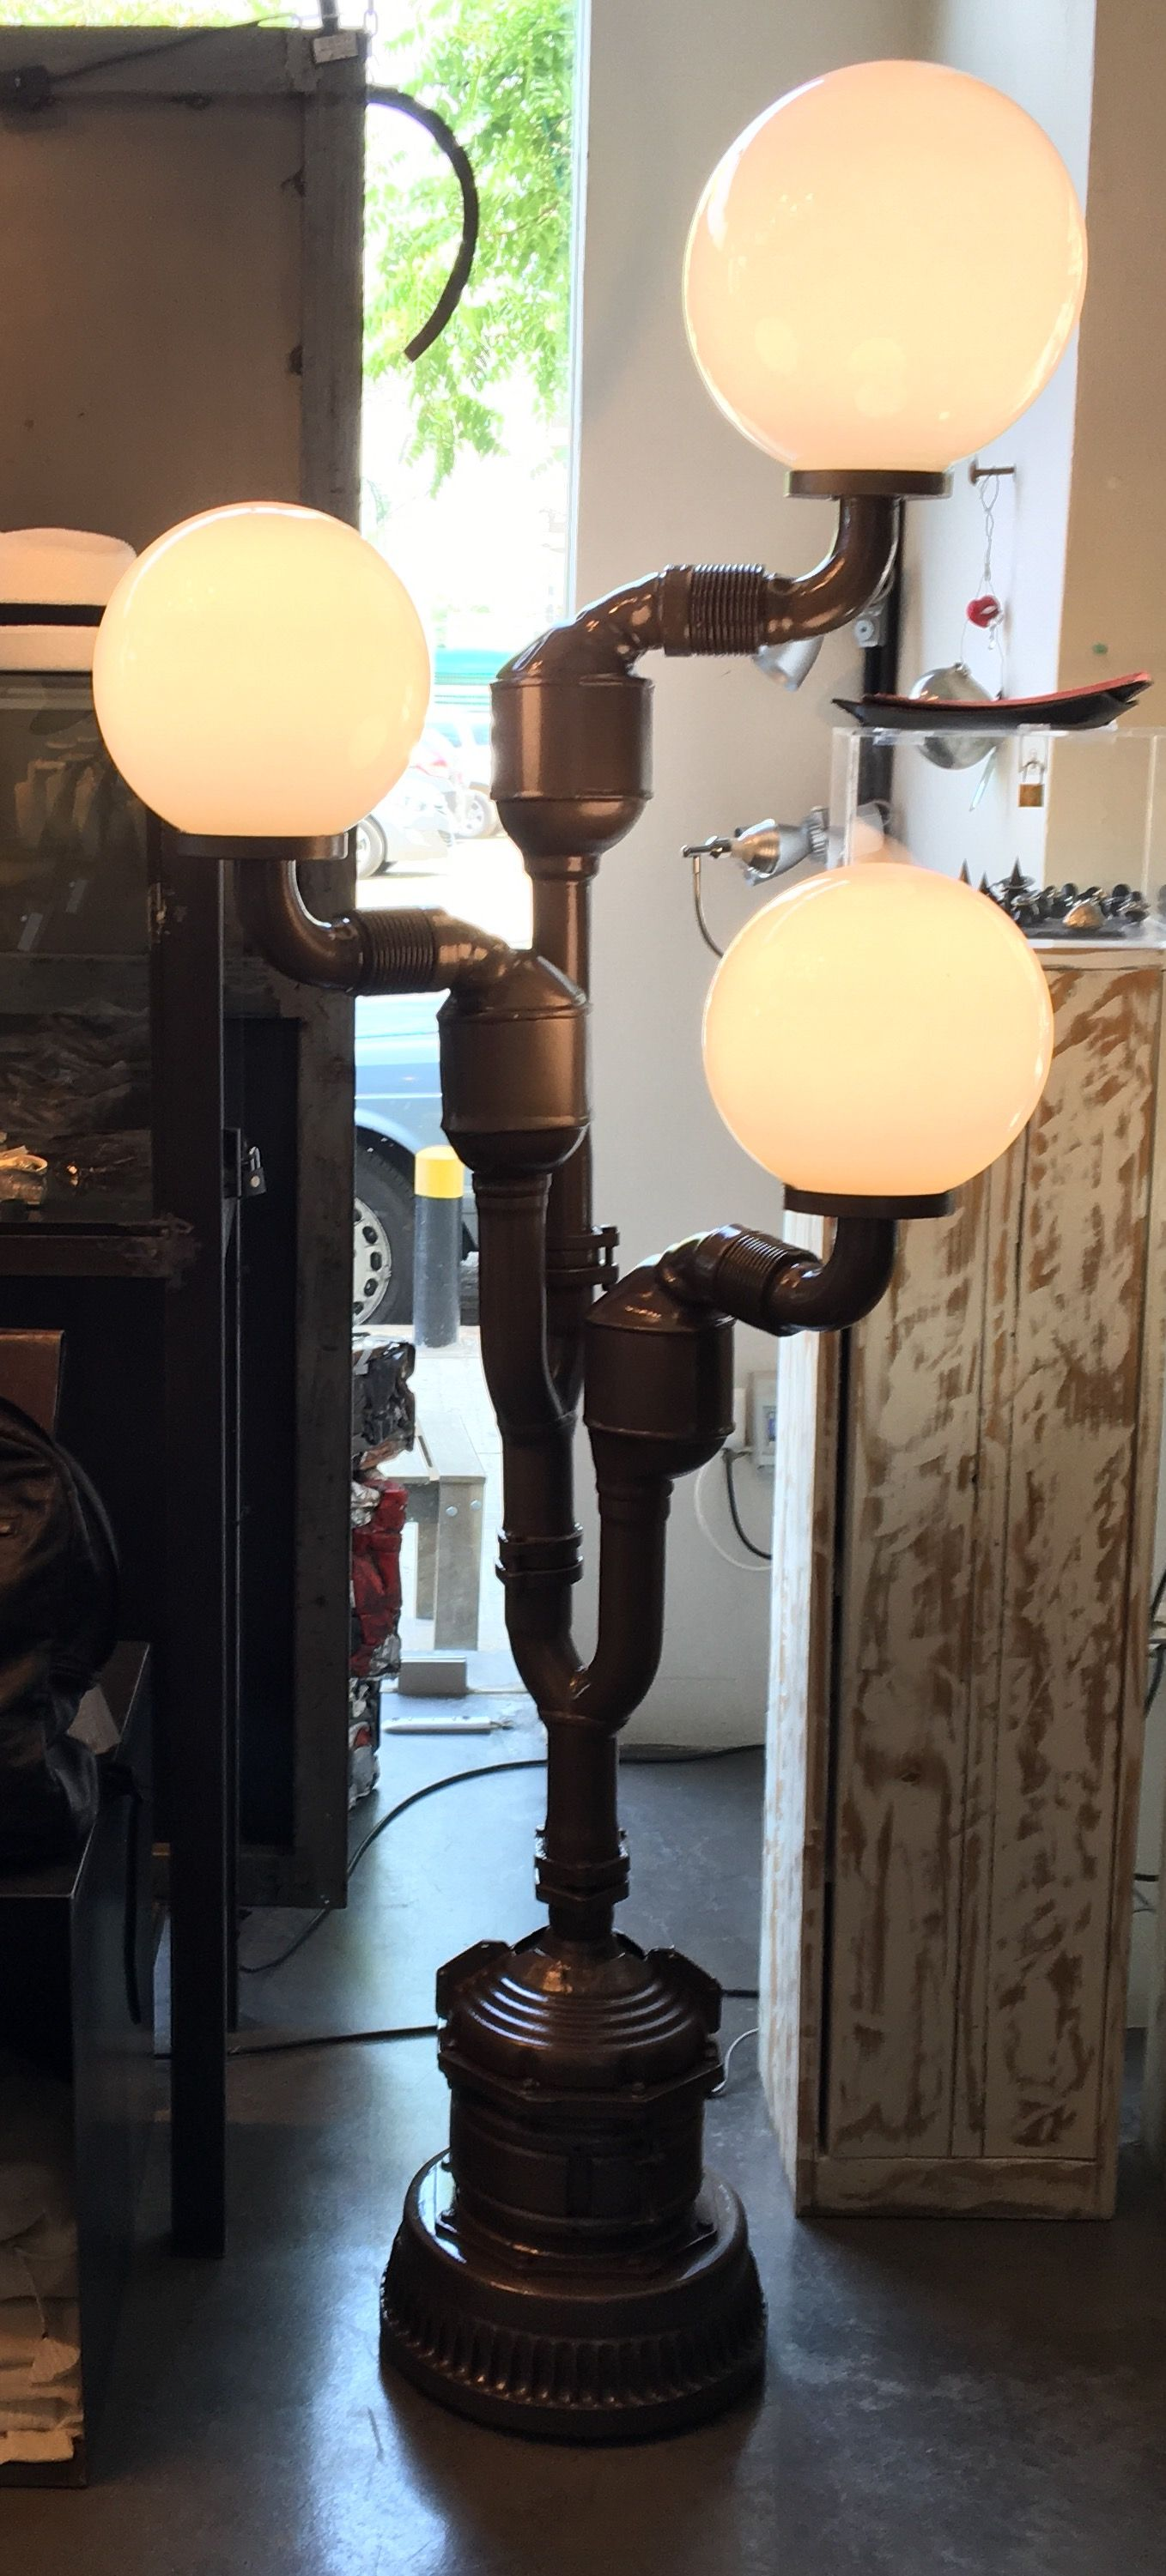 w pic index eiko beam jsp wisconsin lamp incandescent illinois distributor id sealed vac electric standard indiana screw